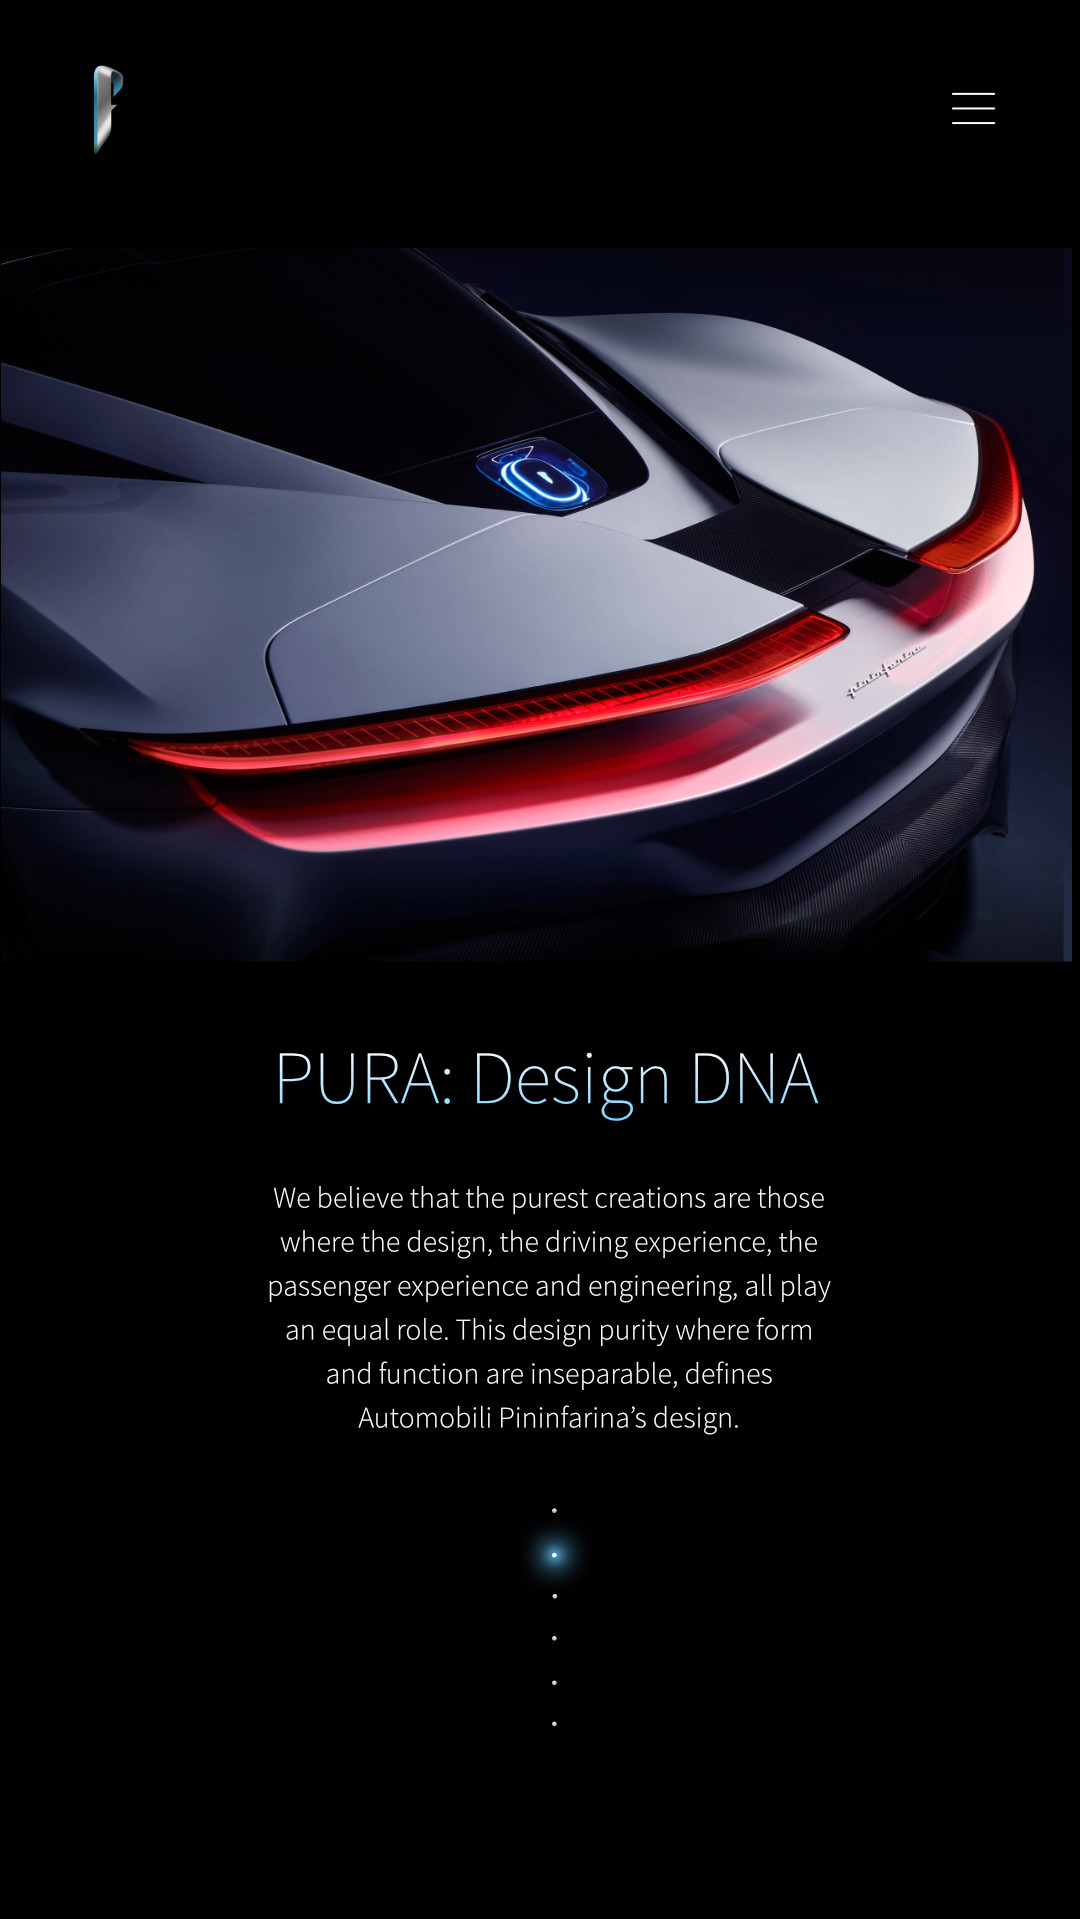 Automobili Pininfarina is a high-performance sports car and luxury electric vehicle manufacturer. Art direction, branding, uiux, web, landing pages, media management, front end development, website design for Battista previously known as PF0. Meg Wehrlen